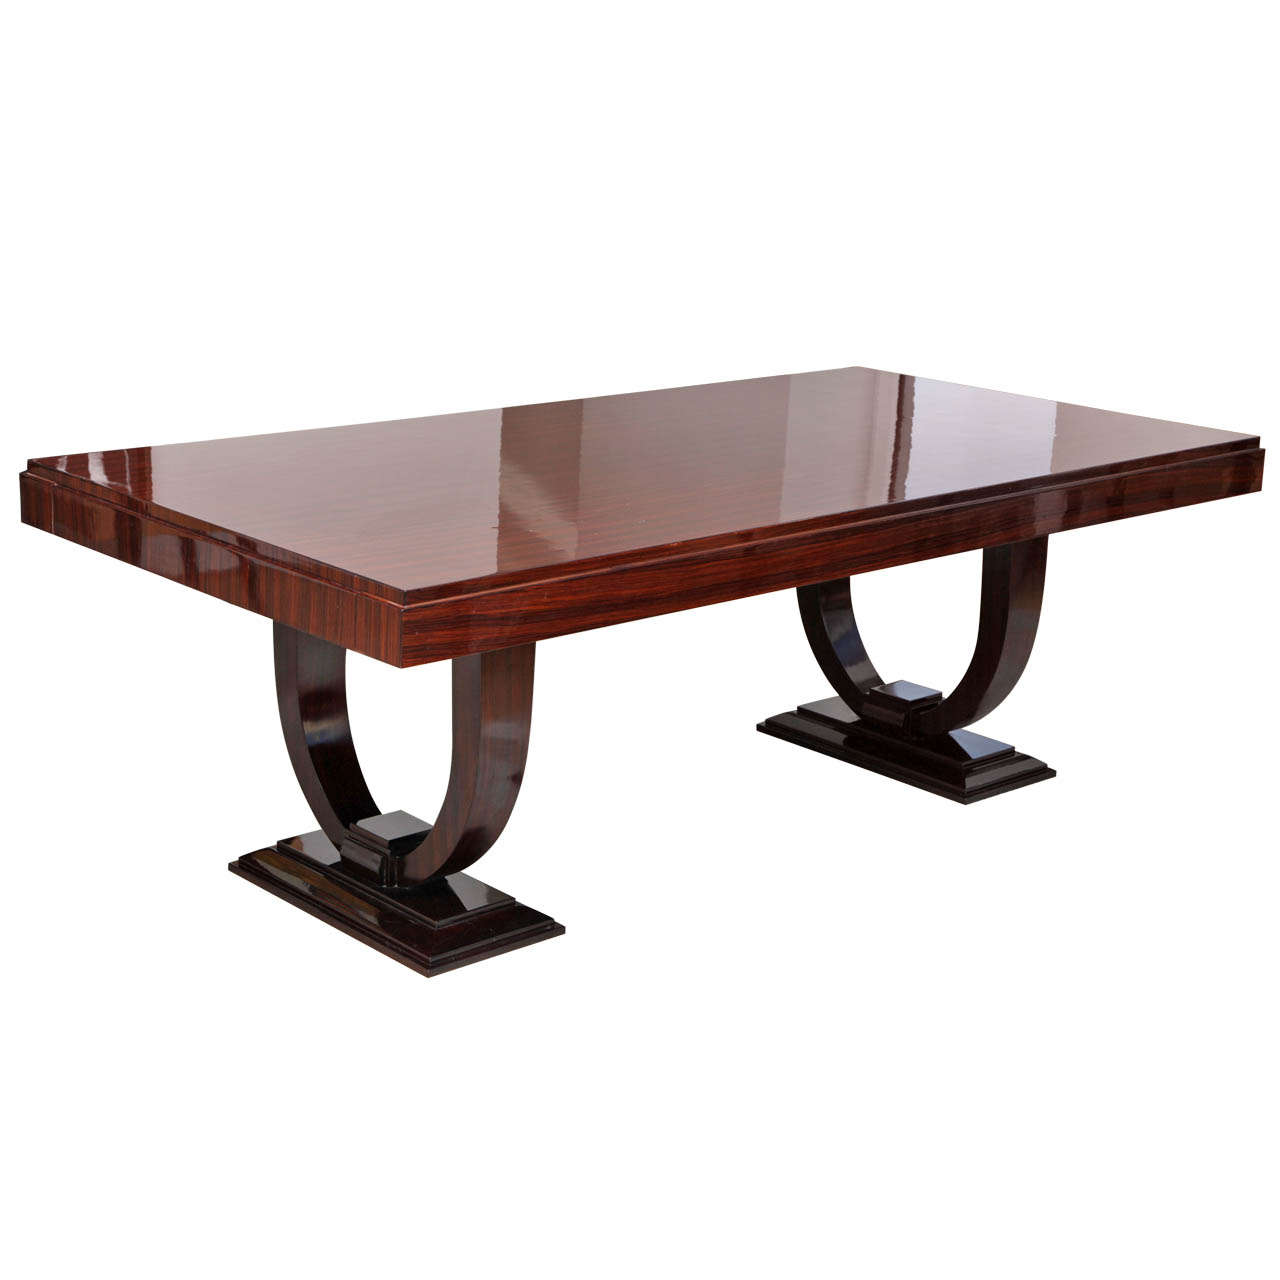 Stunning Art Deco Macassar Ebony Dining Table For